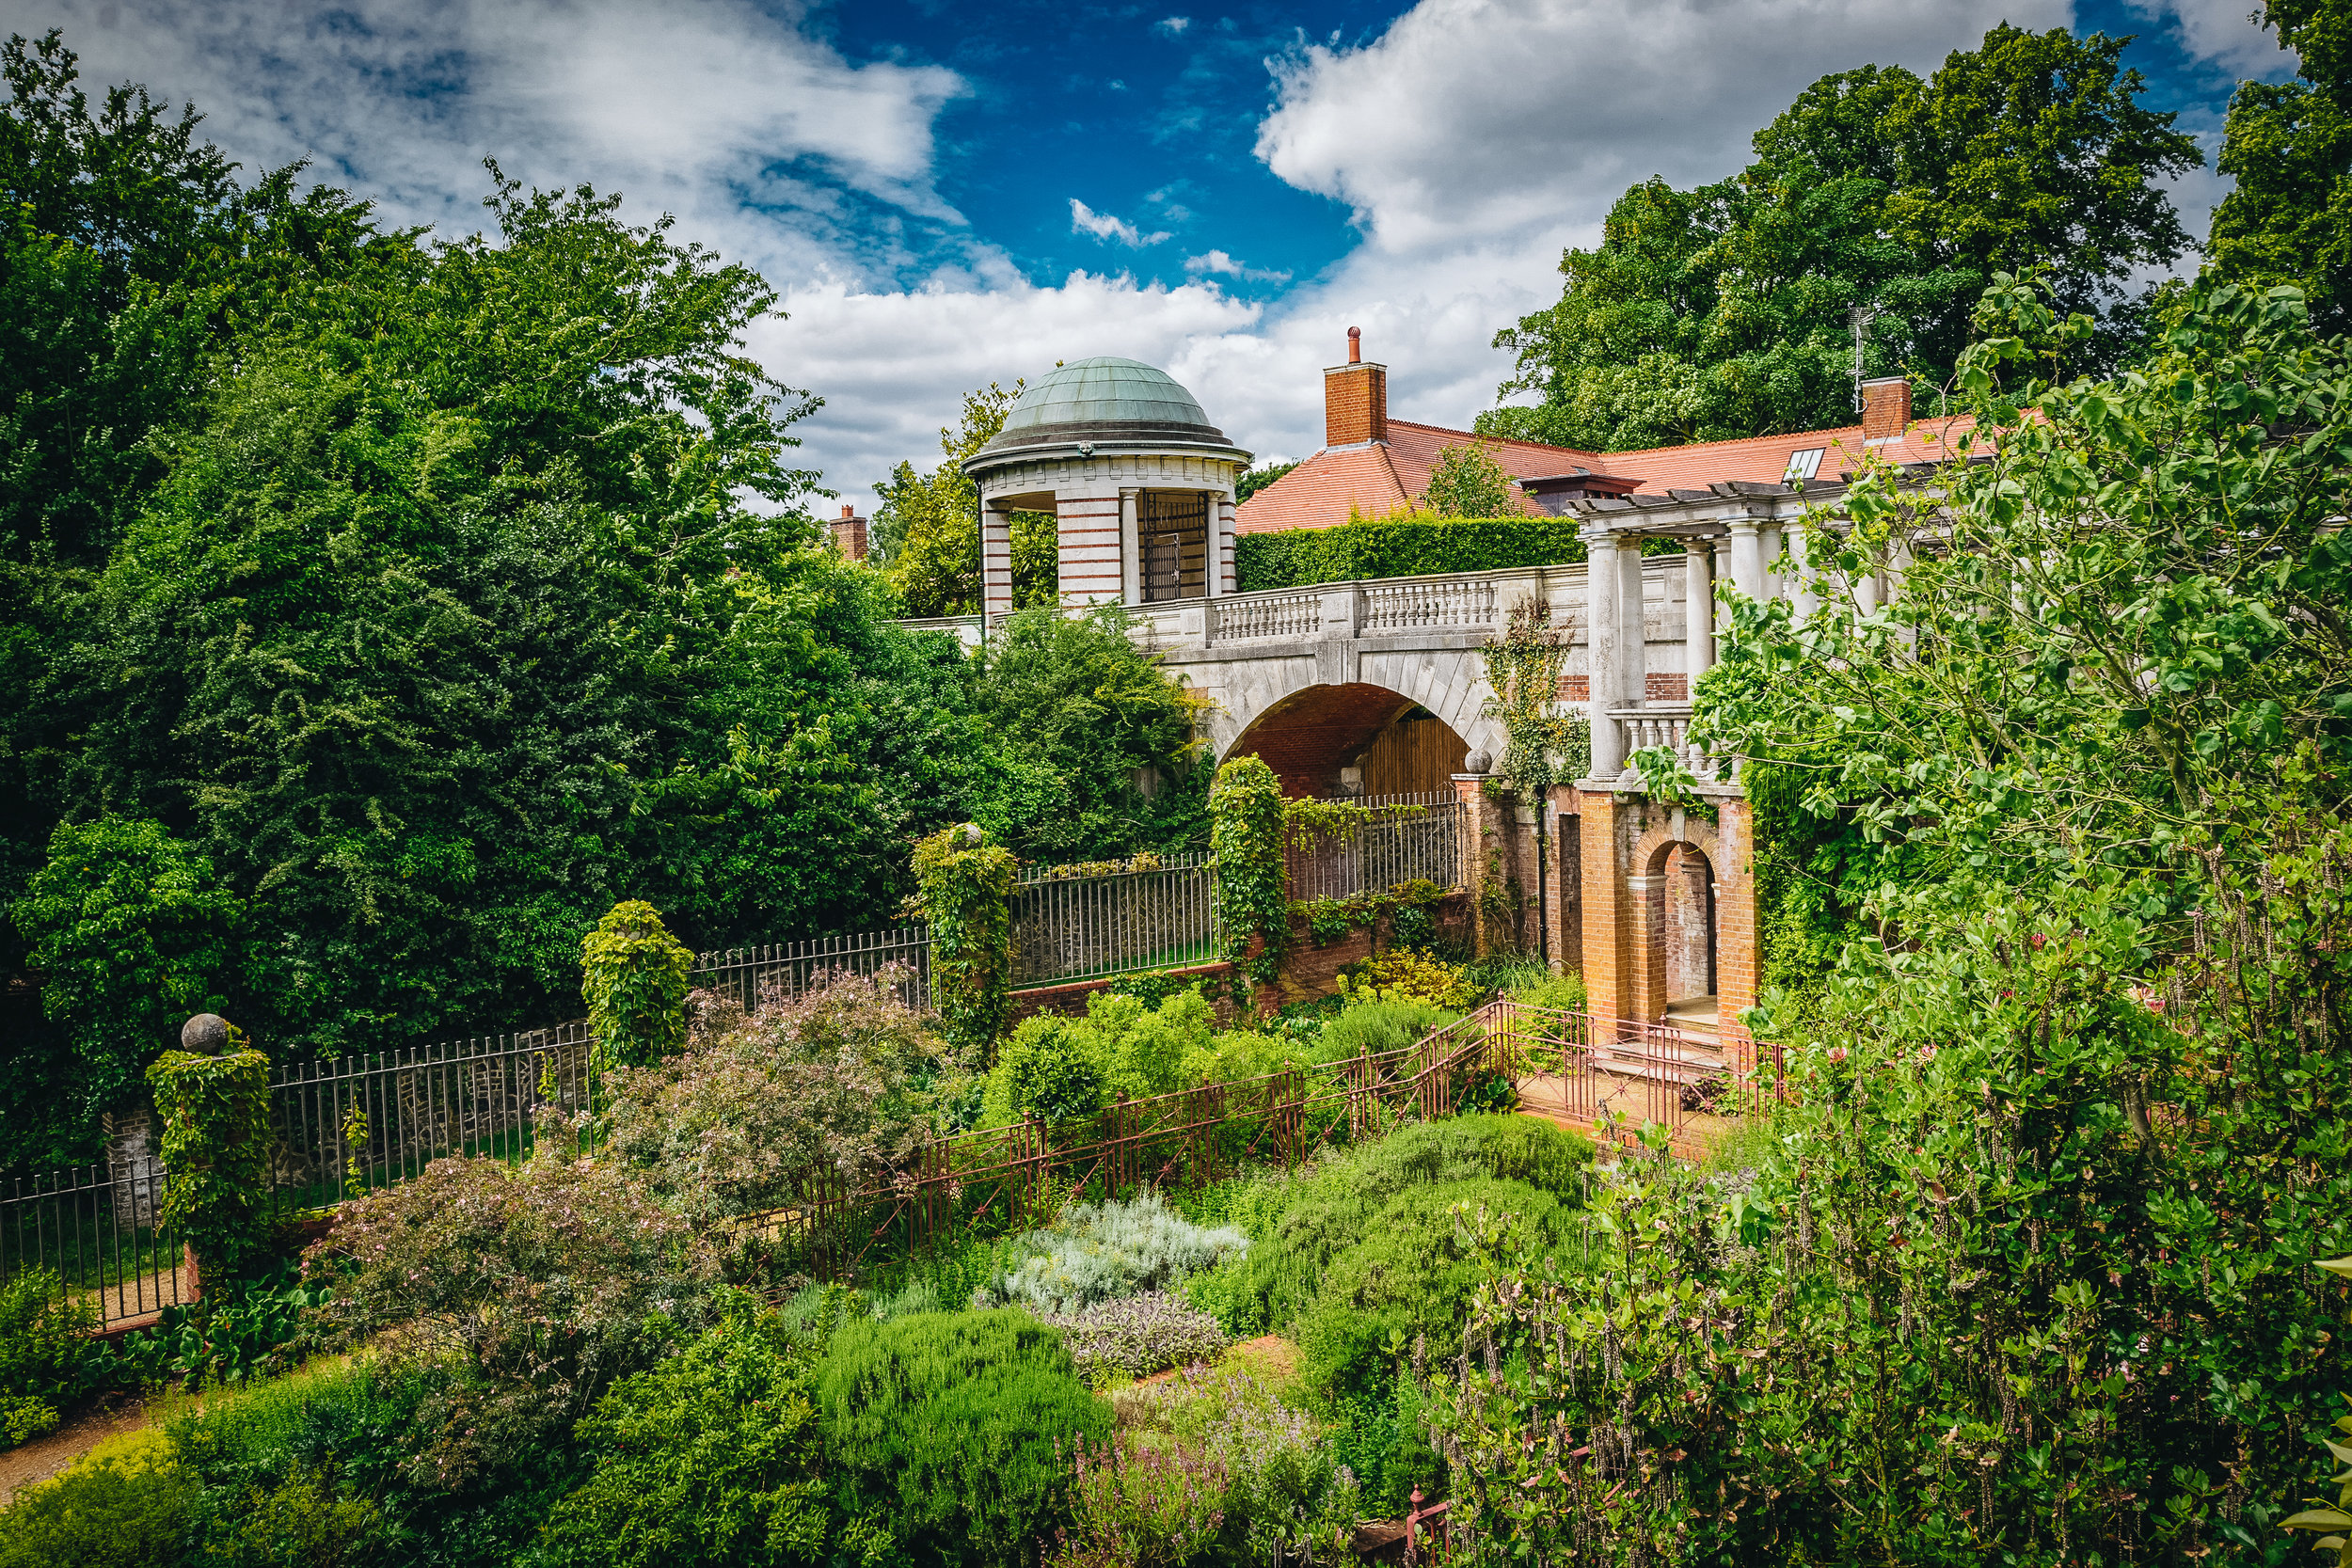 On the west side of Hamstead Heath is this sprawling Georgian garden. Consisting of a pergola and terrace (under reno), the Hill Garden seems to be a favourite for fashion students doing photoshoots.